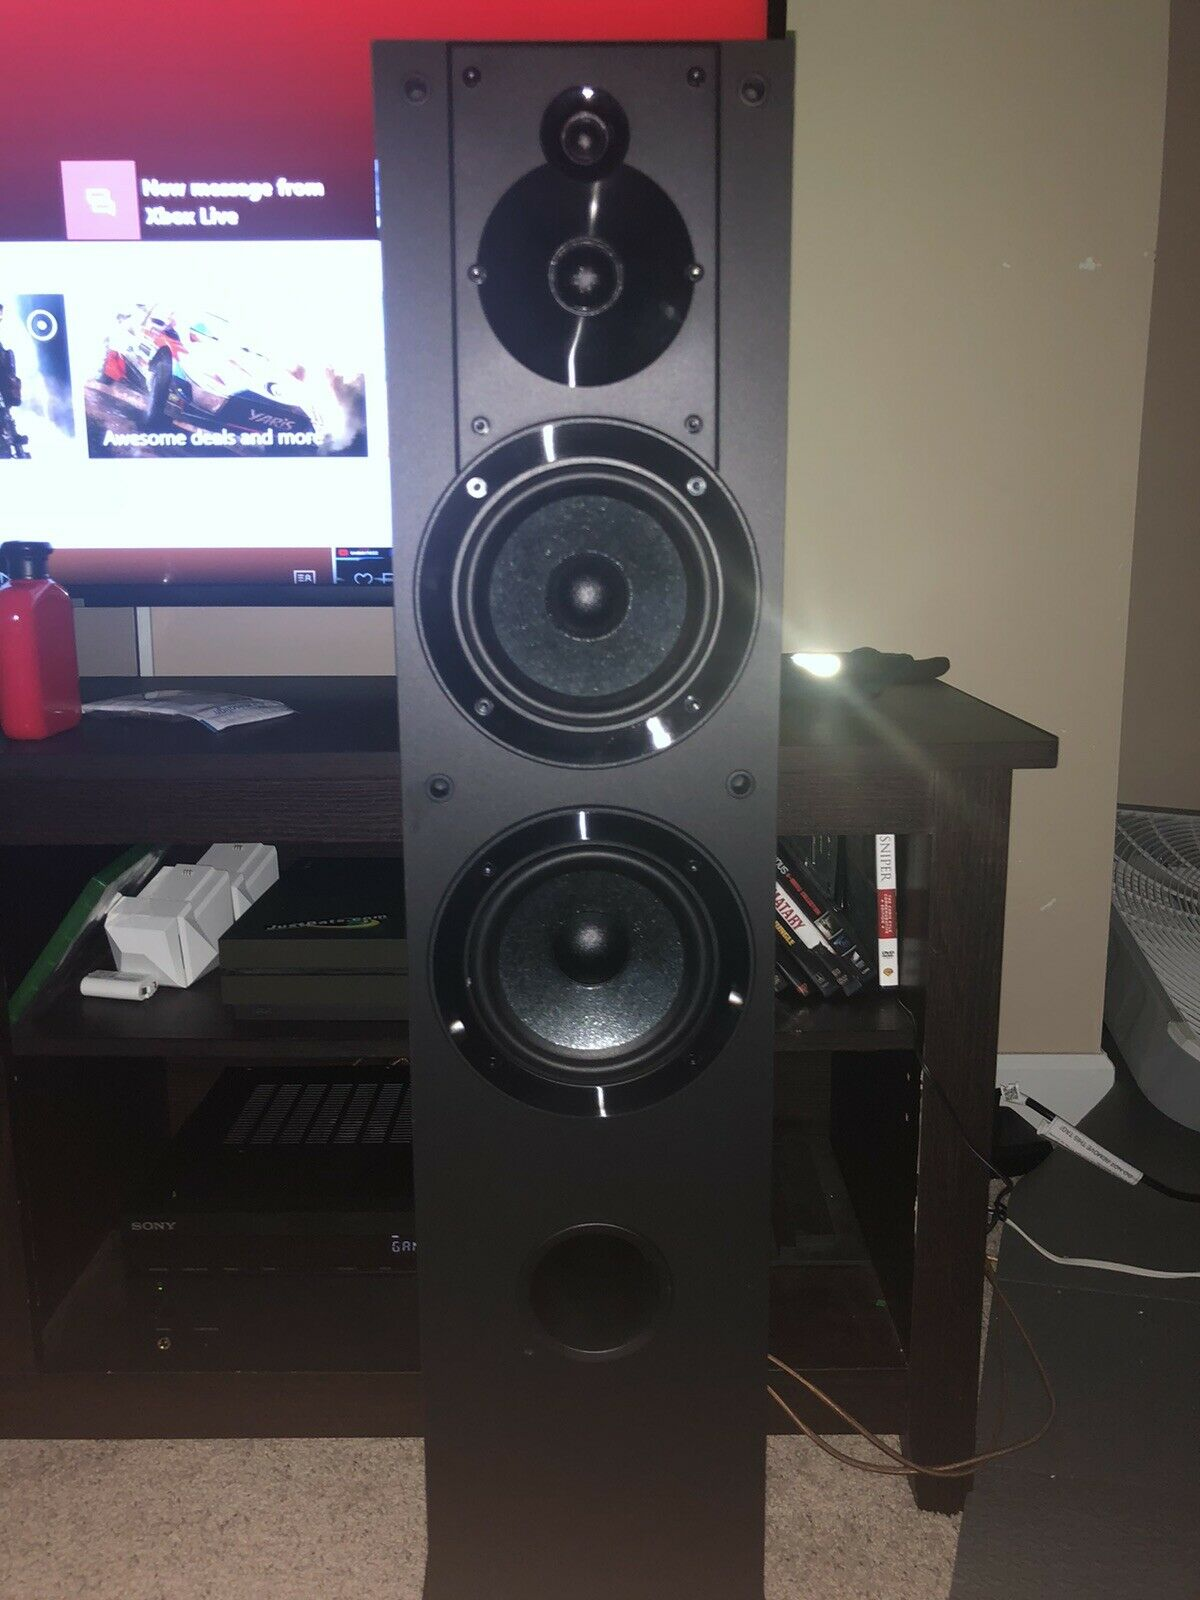 sony surround sound system 5.1 Home Theatre. Buy it now for 850.00